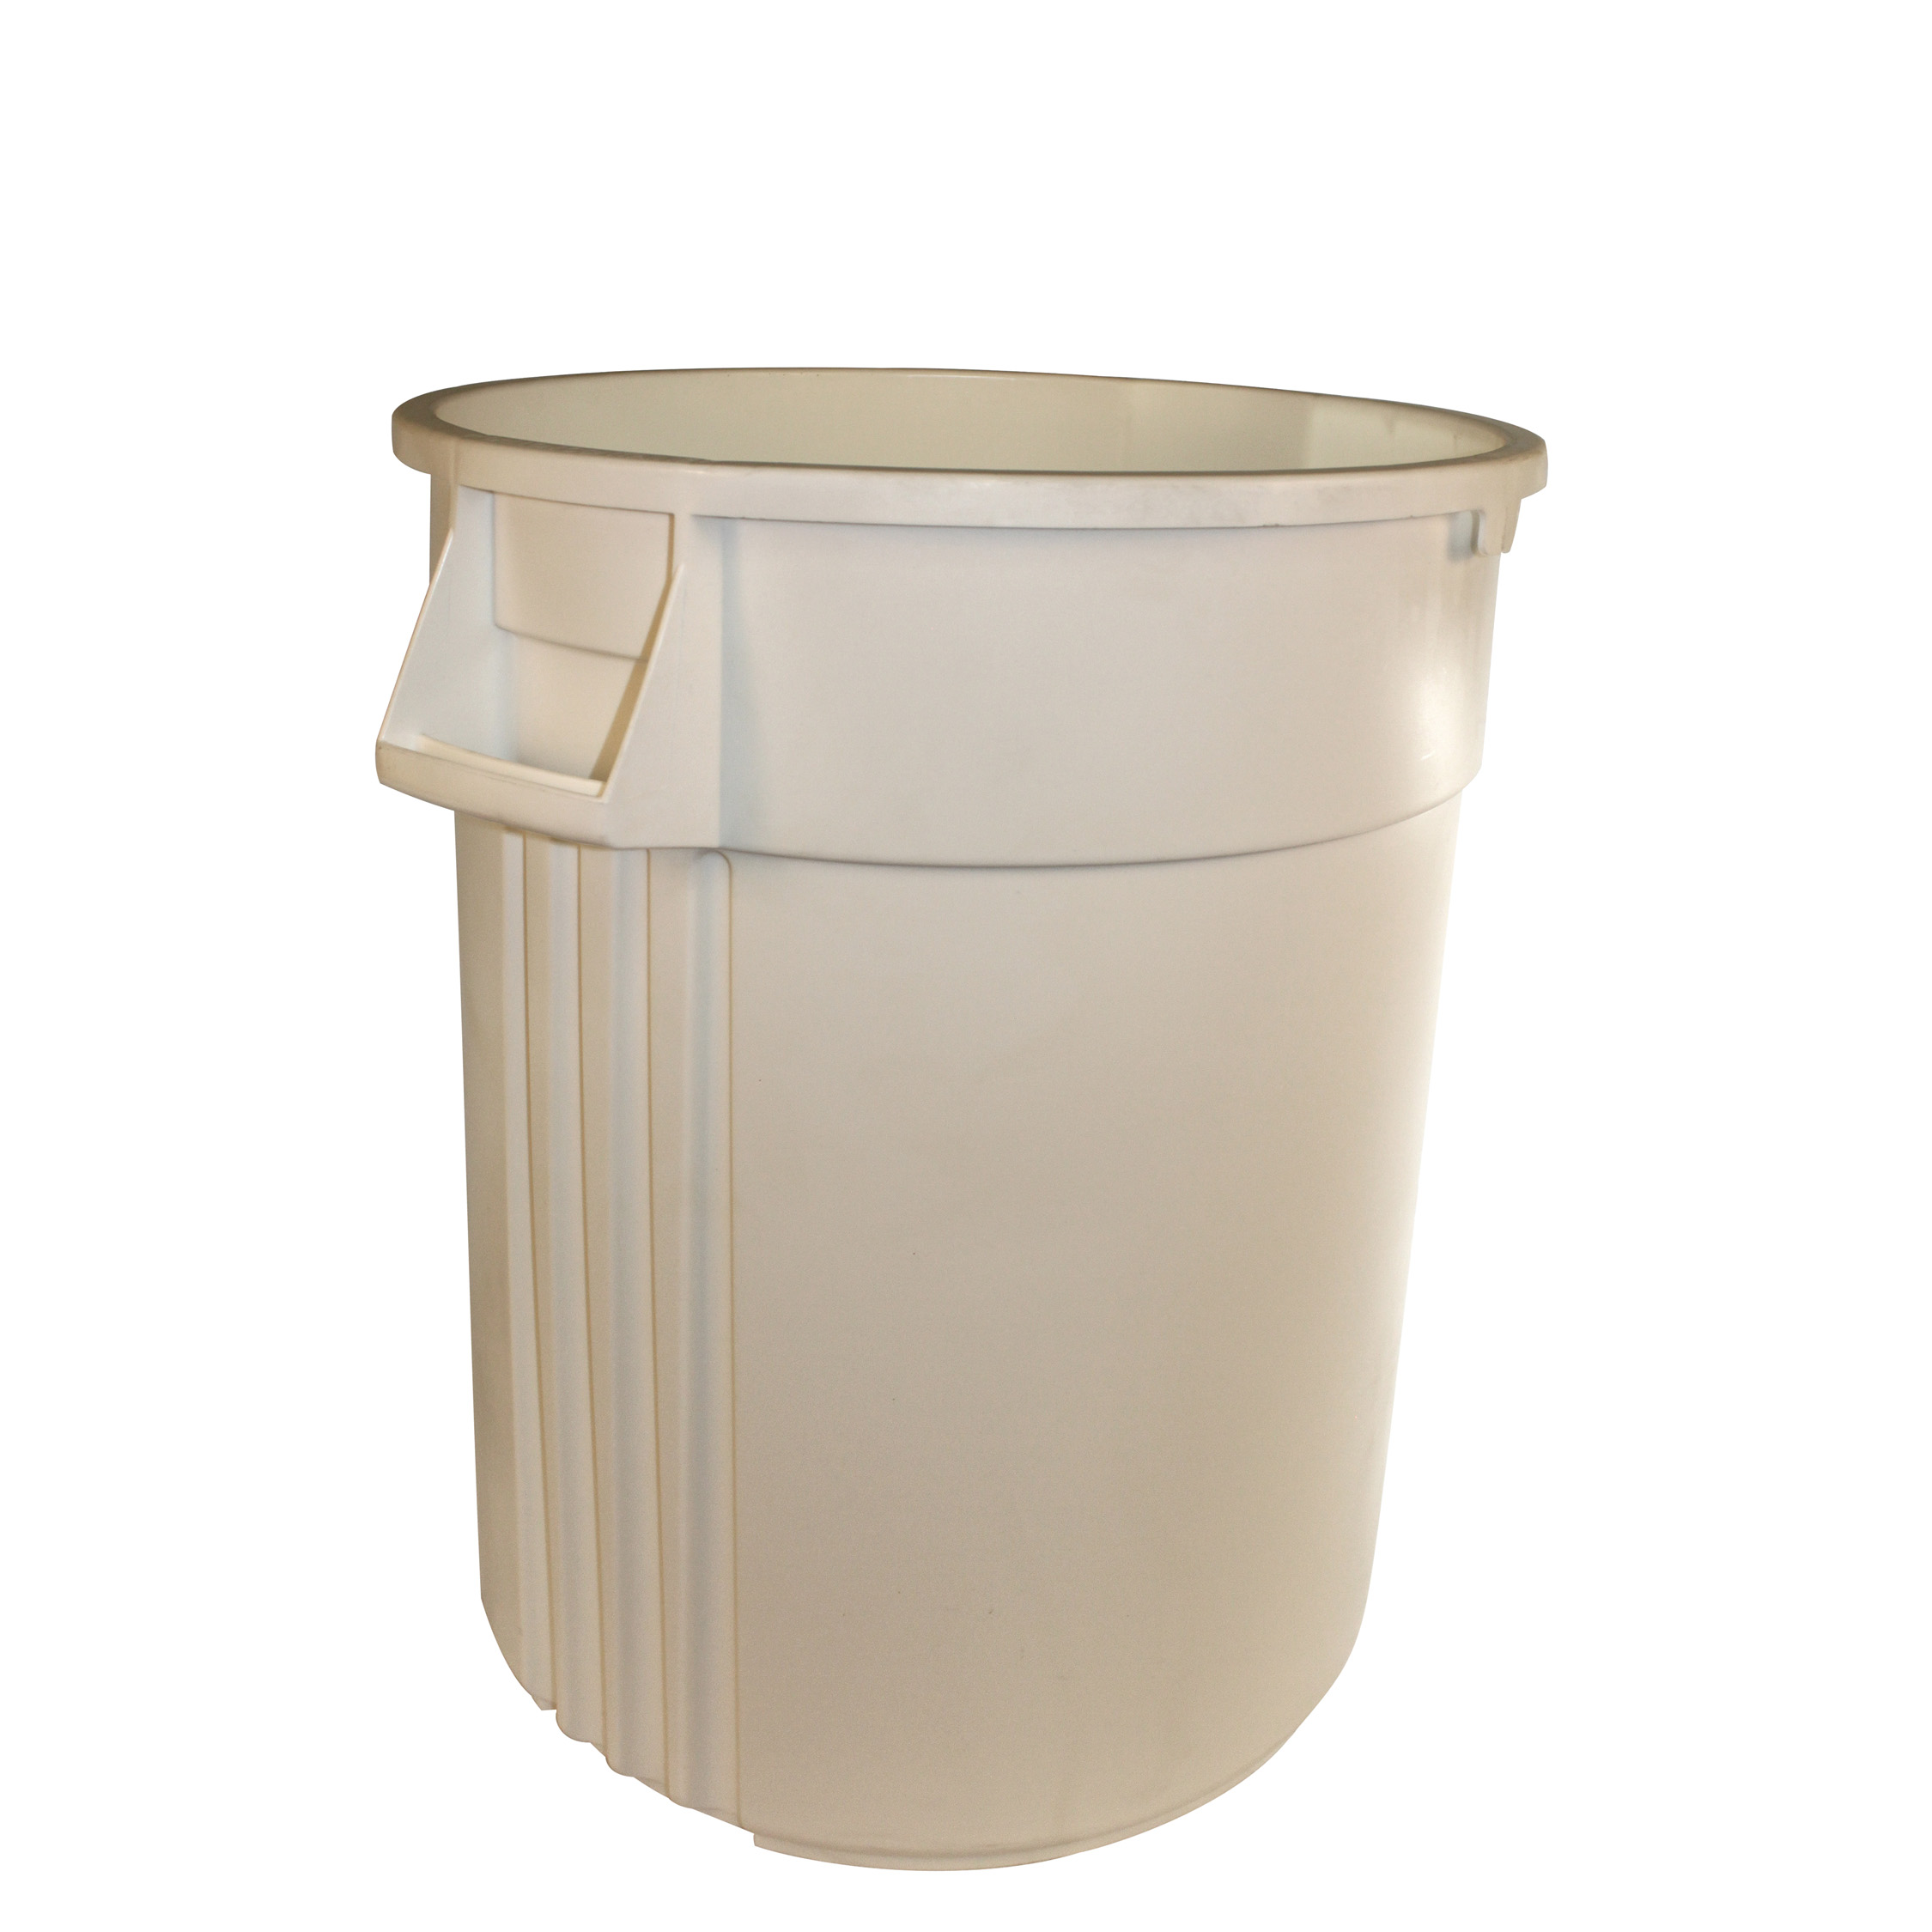 3700-0392 Impact Products 7744-1 trash can / container, commercial